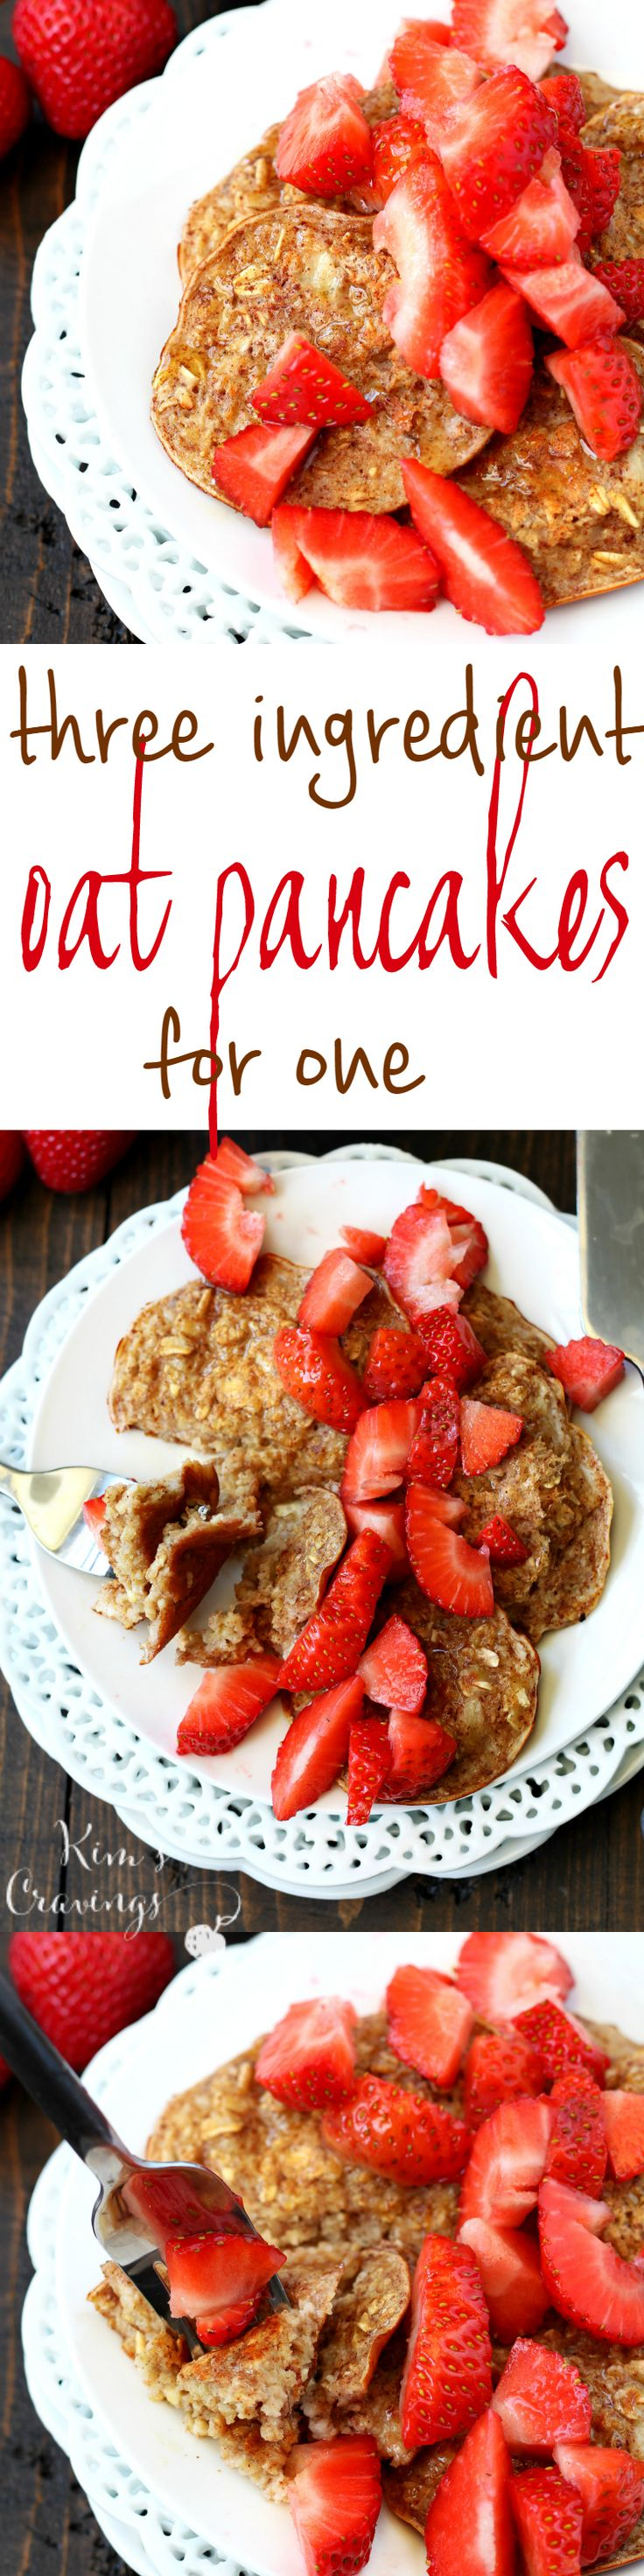 Three Ingredient Oat Pancakes for One- the perfect quick, easy, satisfying breakfast for one that's super scrumptious too! (gluten & dairy-free)